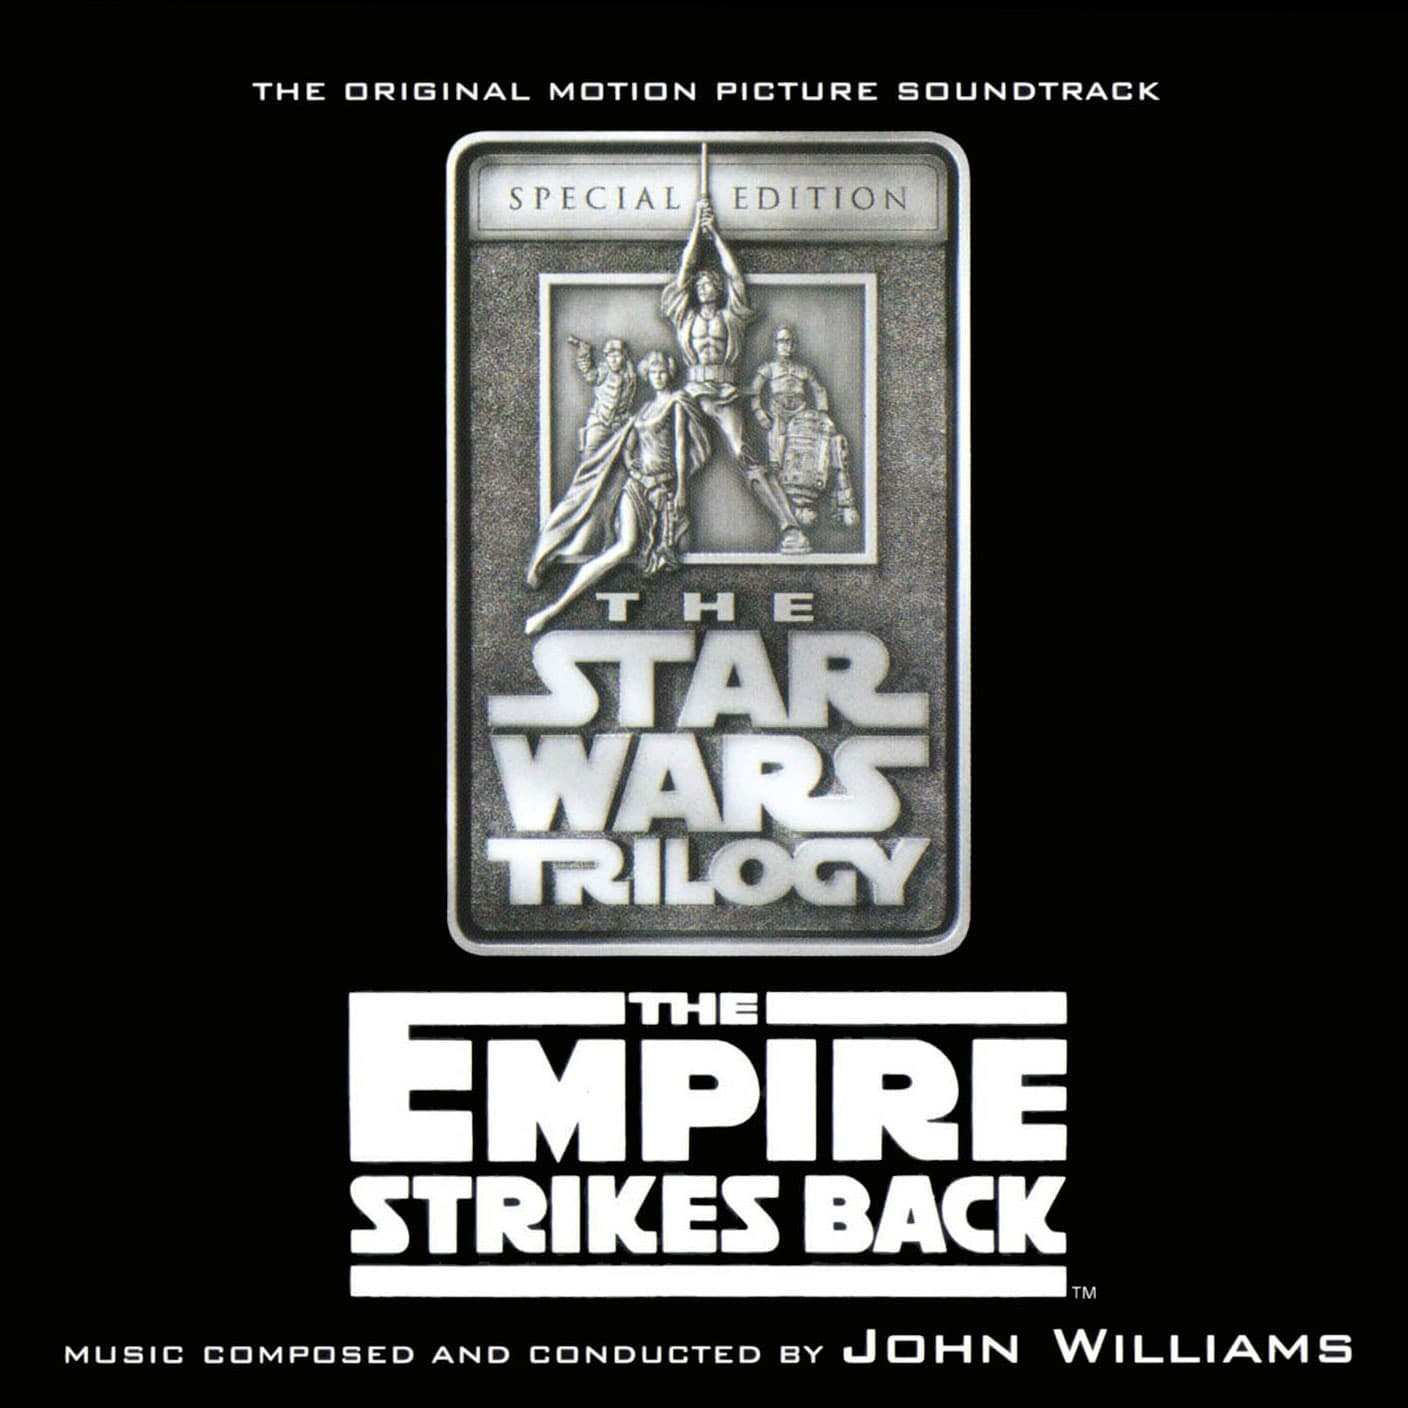 The Empire Strikes Back Soundtrack, Re-Release (1997)